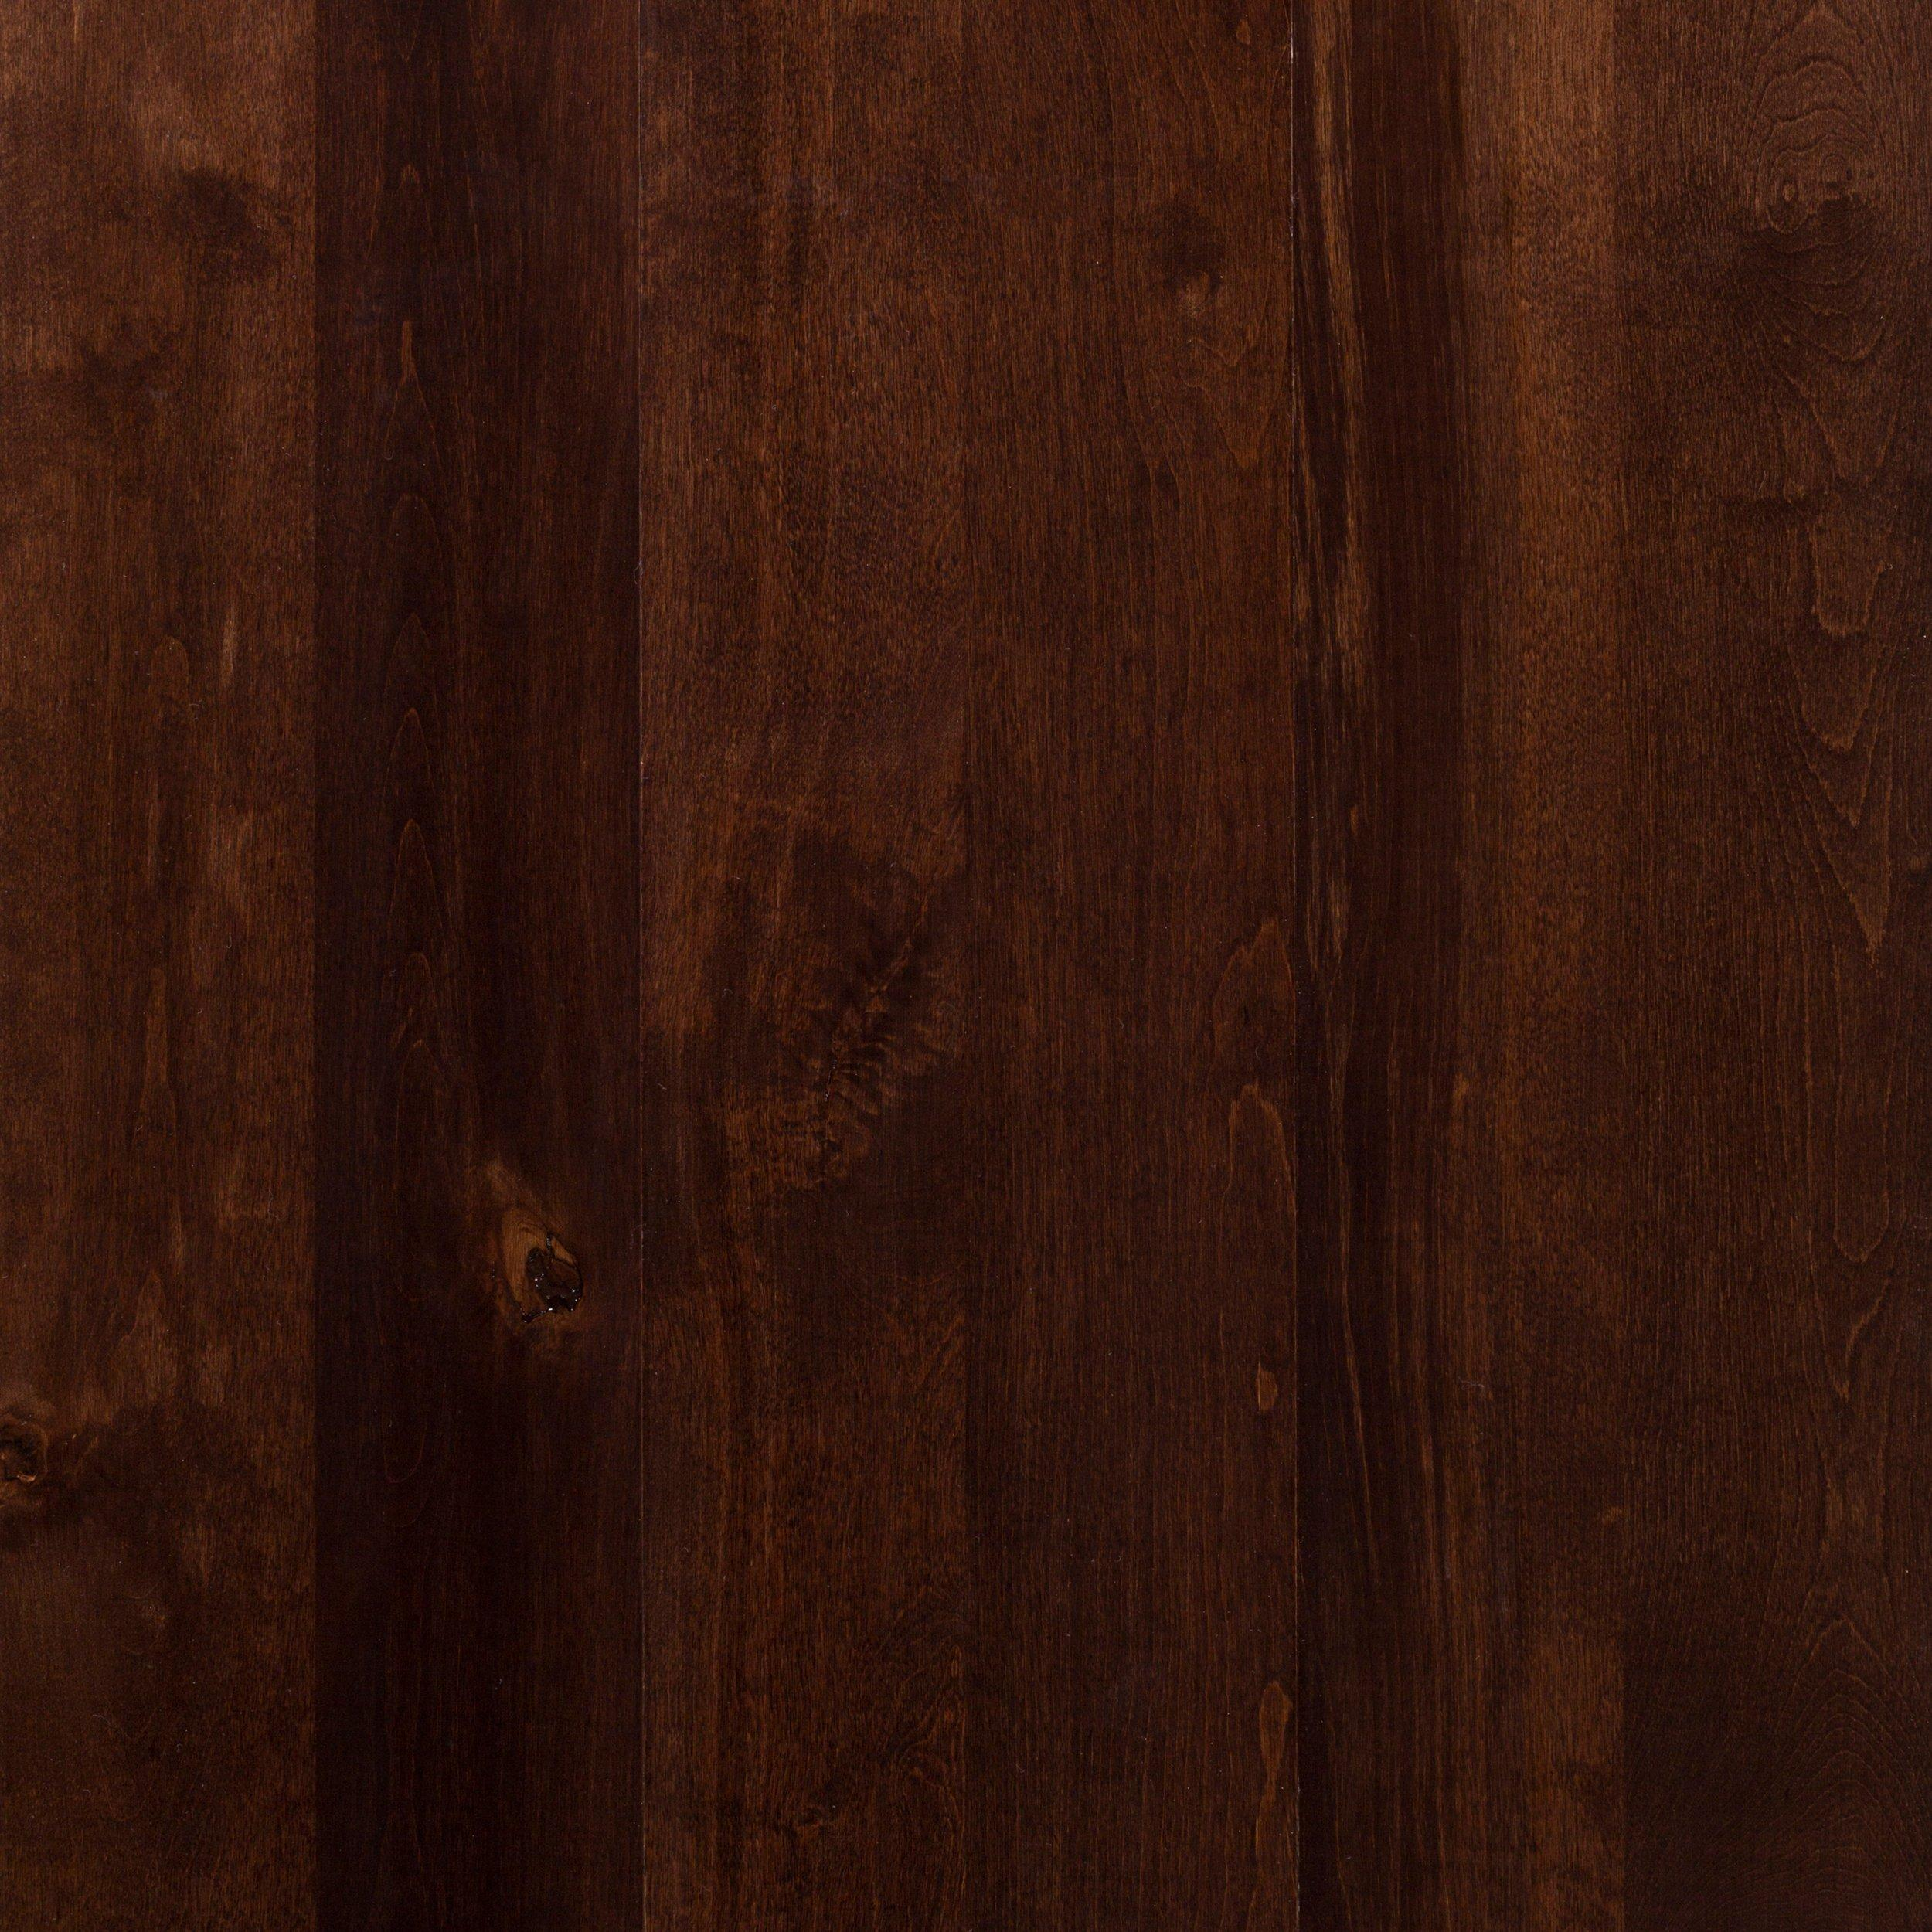 alba brown birch smooth solid hardwood